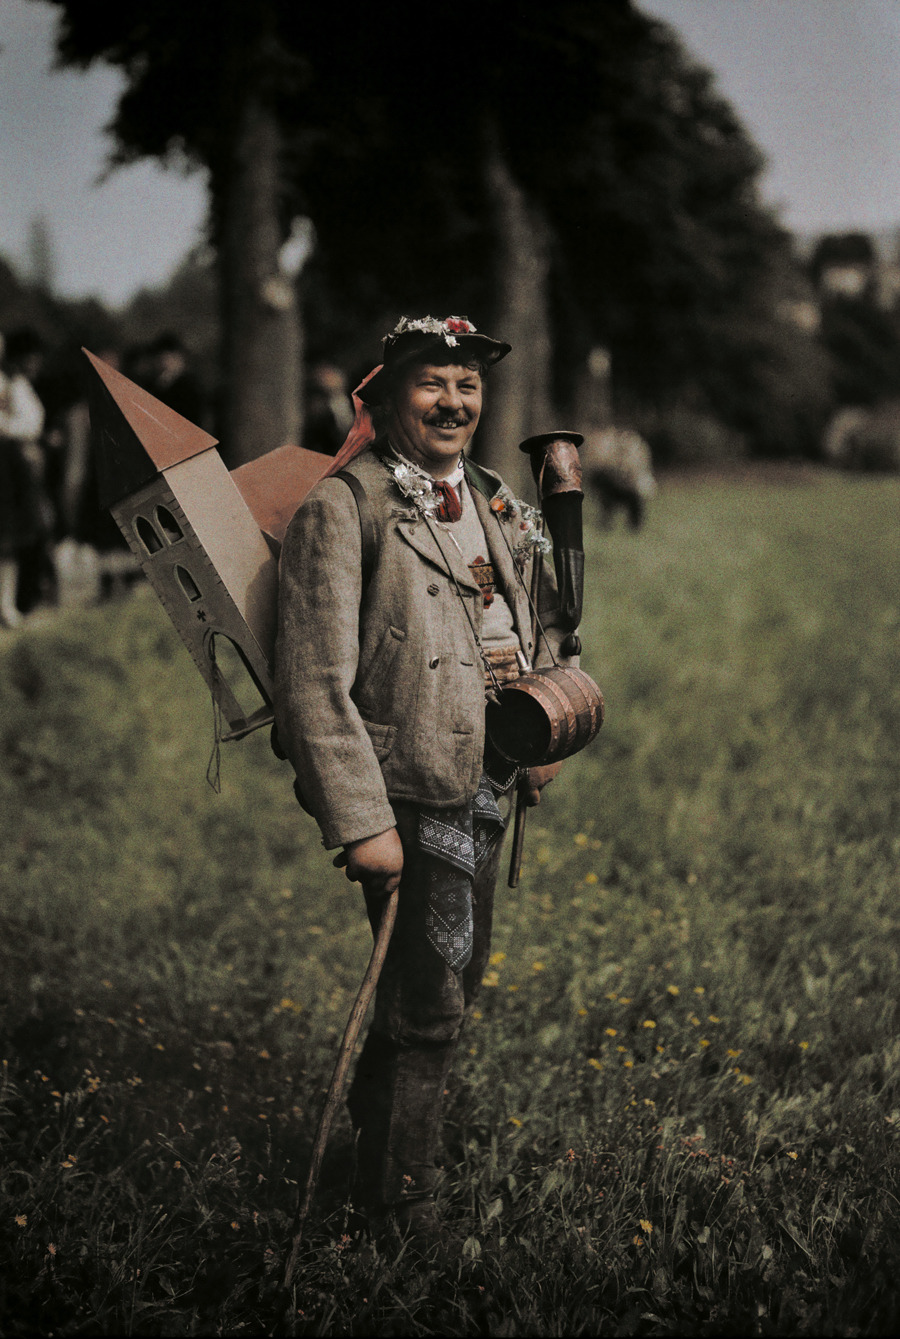 Peasant takes up collection for new church donning keg and cow horn in Austria, November 1932.Photograph by Hans Hildenbrand, National Geographic